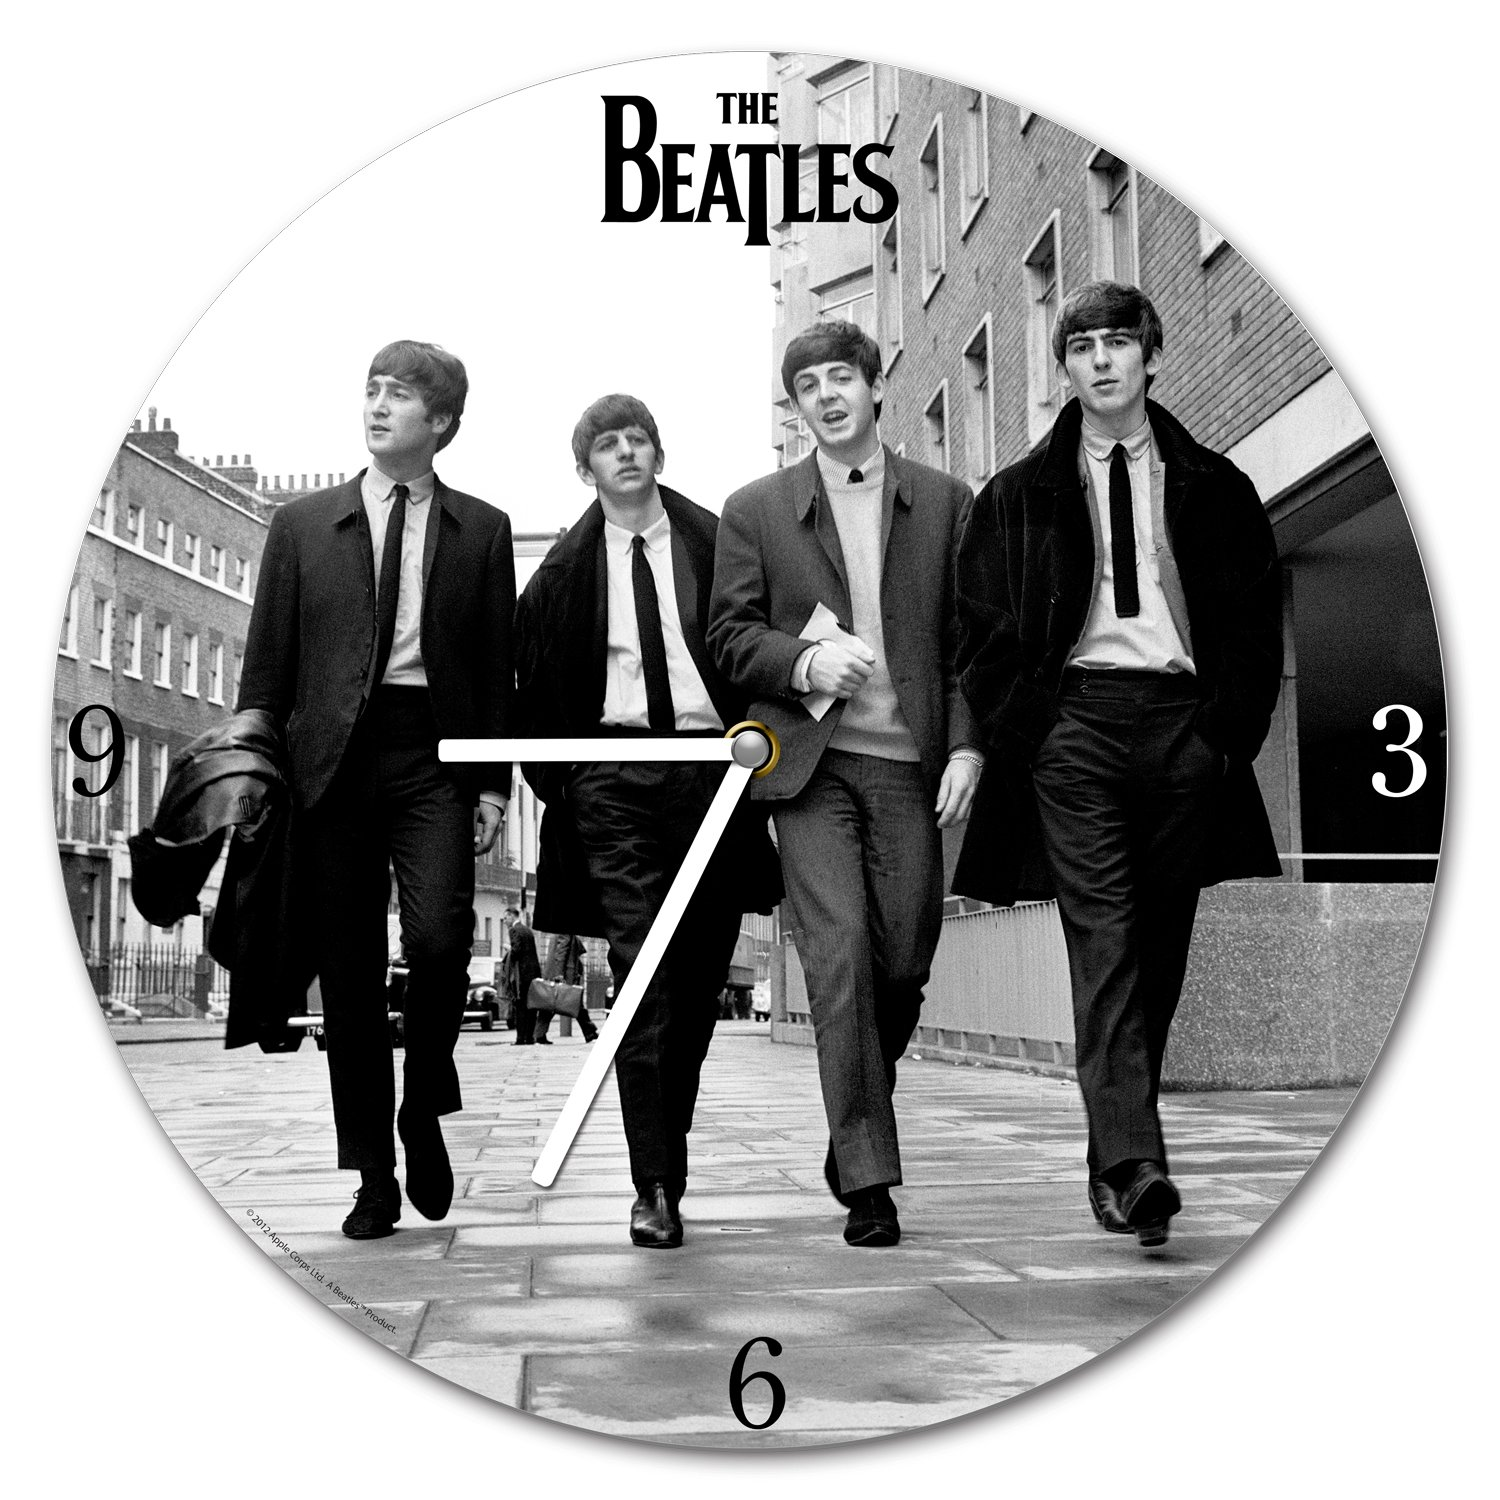 The Beatles 13.5 inch Cordless Wood Wall Clock, Black and White